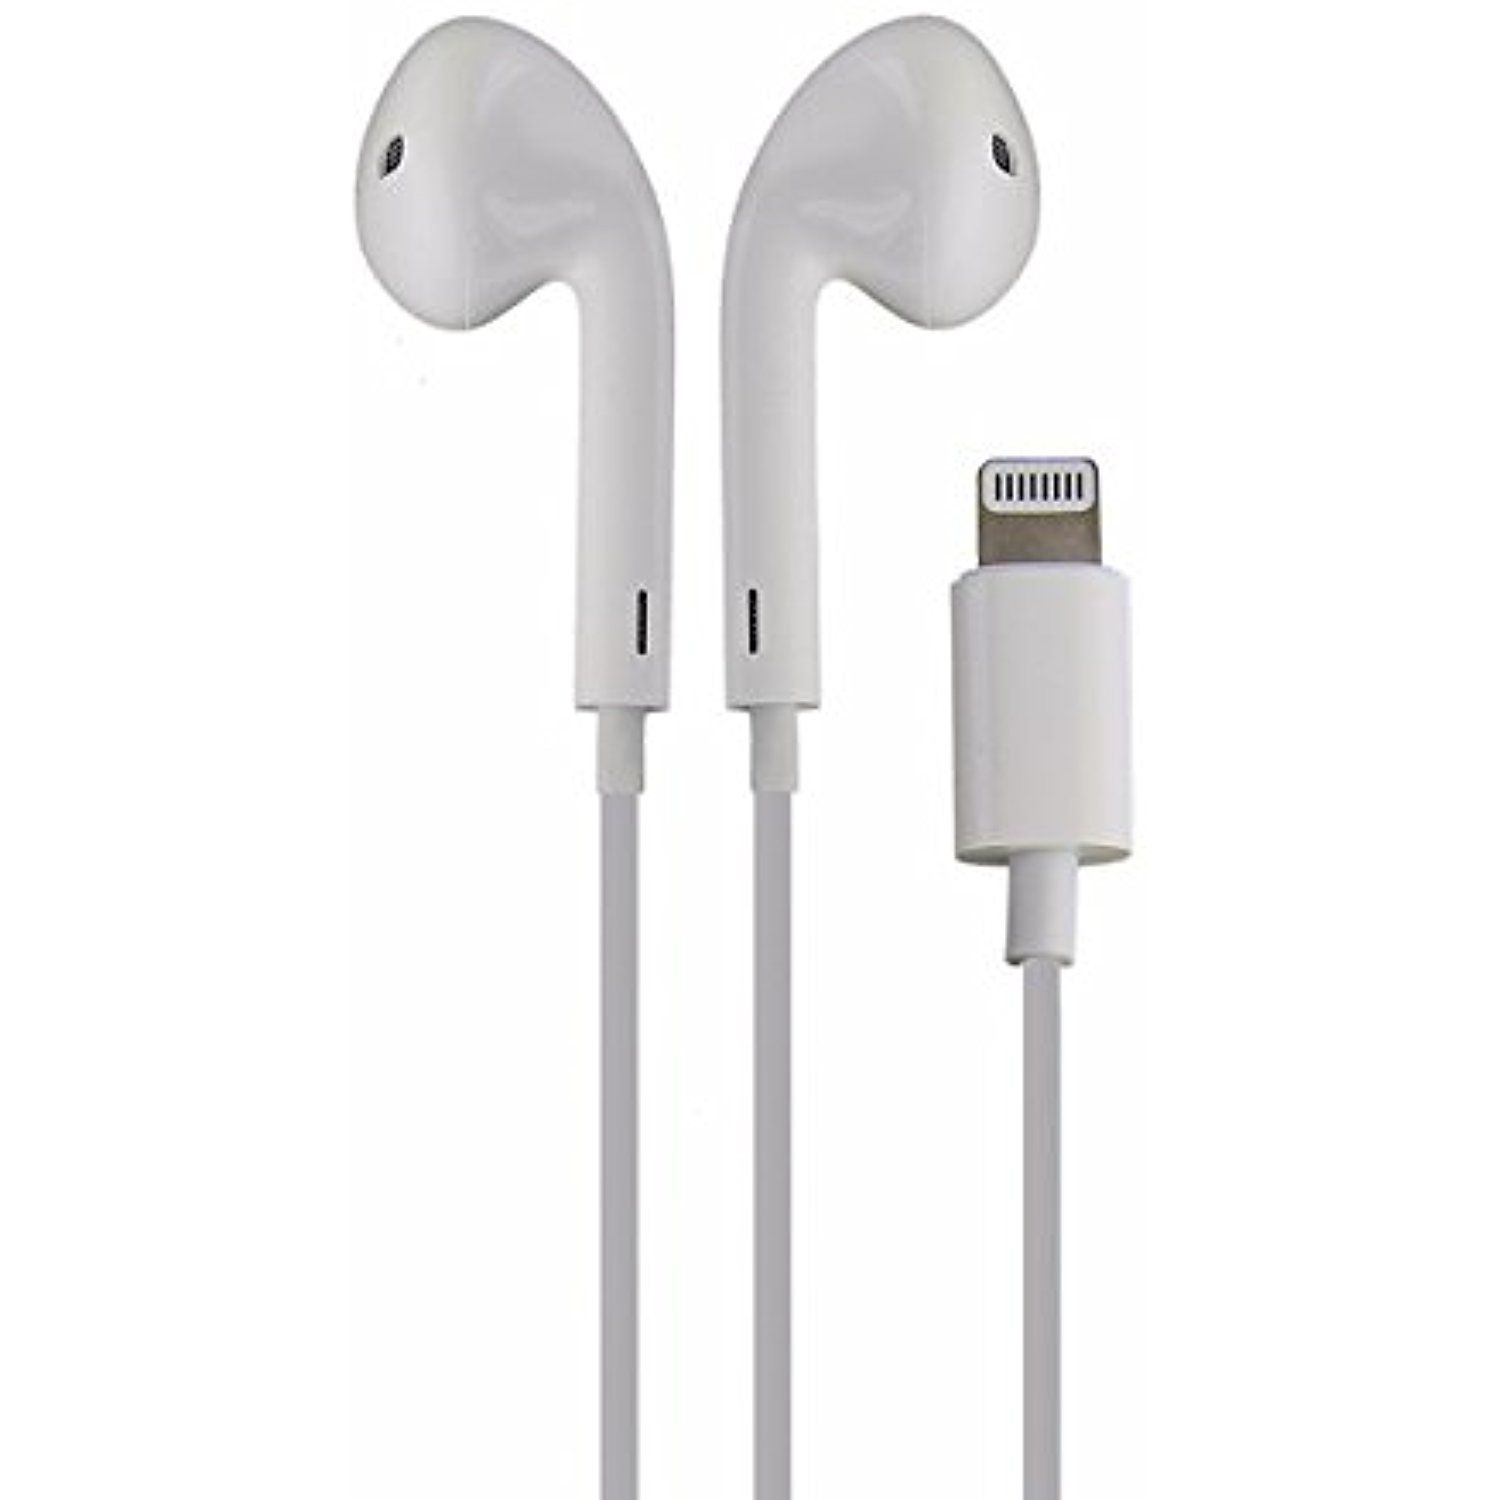 oem apple iphone 7 earpod wired headphones with lightning connector white mmtn2am a certified refurbished want additional info click on the image  [ 1500 x 1500 Pixel ]